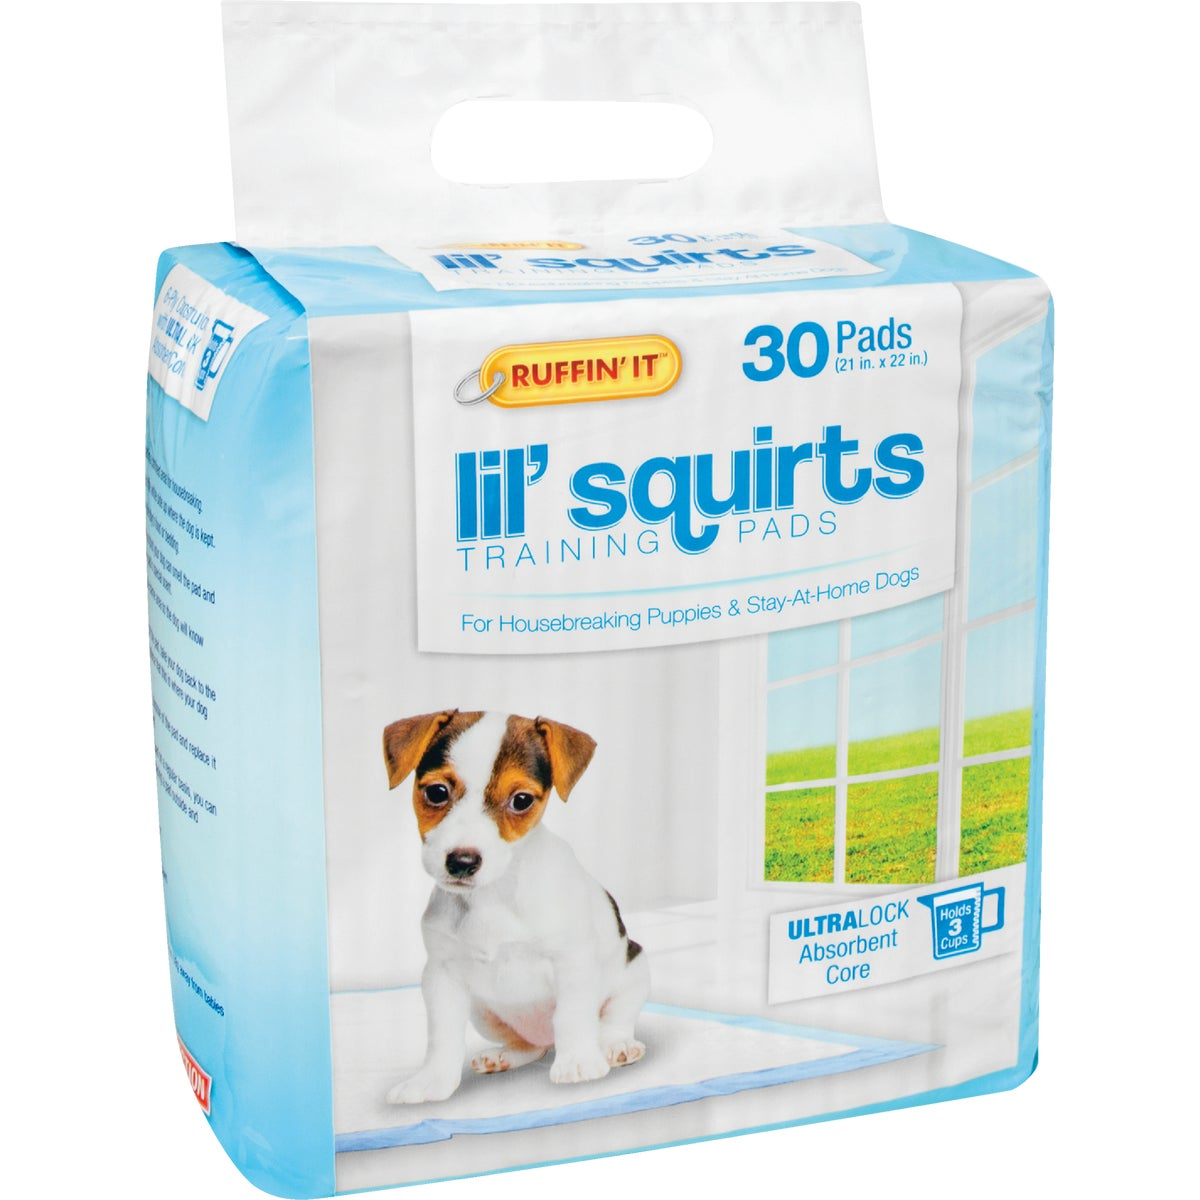 32CT PUPPY TRAINING PADS